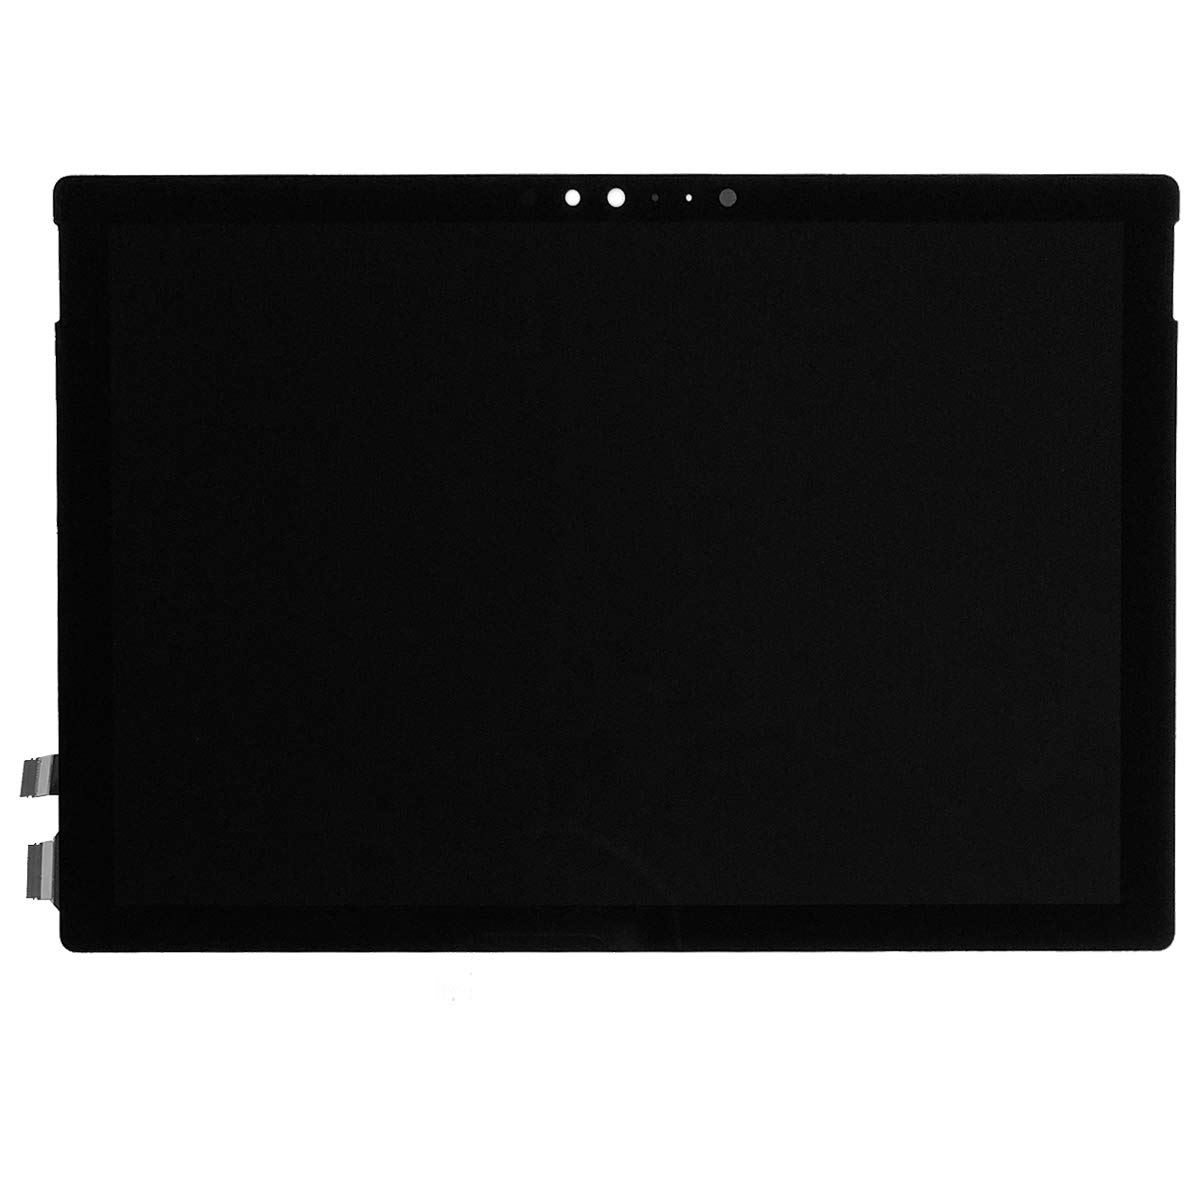 Swark LCD Display Compatible with Microsoft Surface Pro 4 1724 V1.0 12.3'' Touch Screen Digitizer Replacement